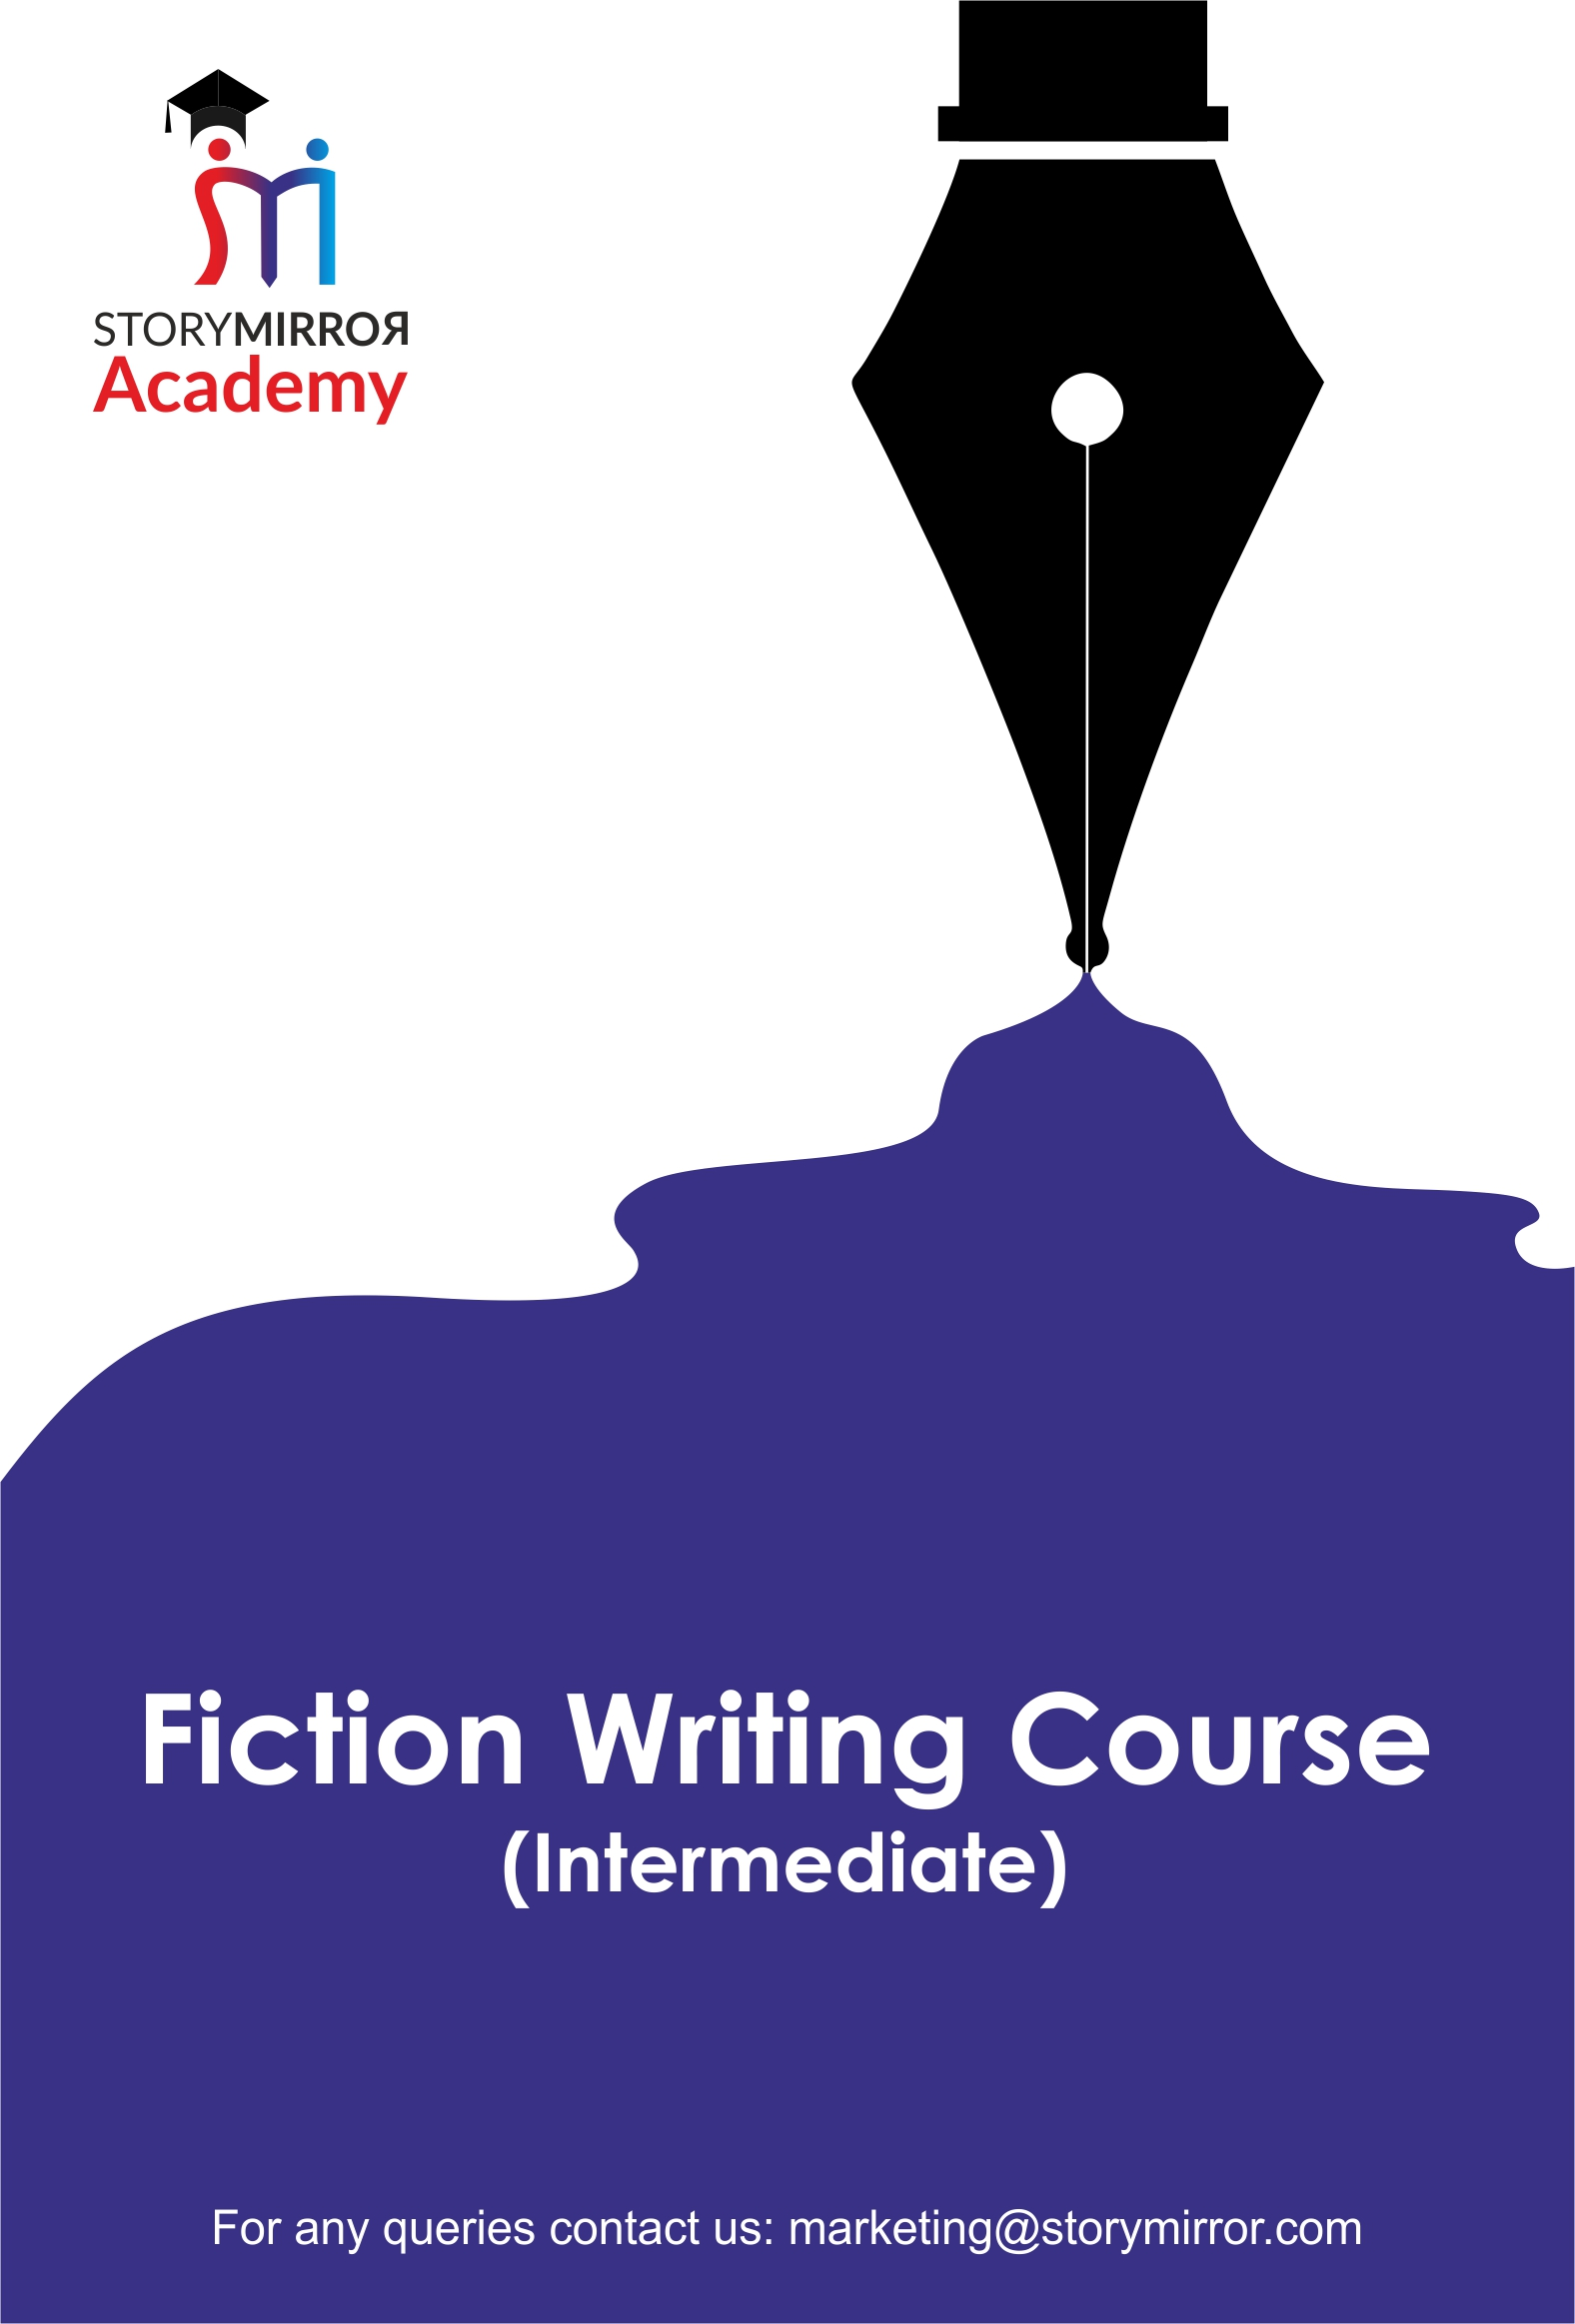 Fiction Writing Course - Intermediate